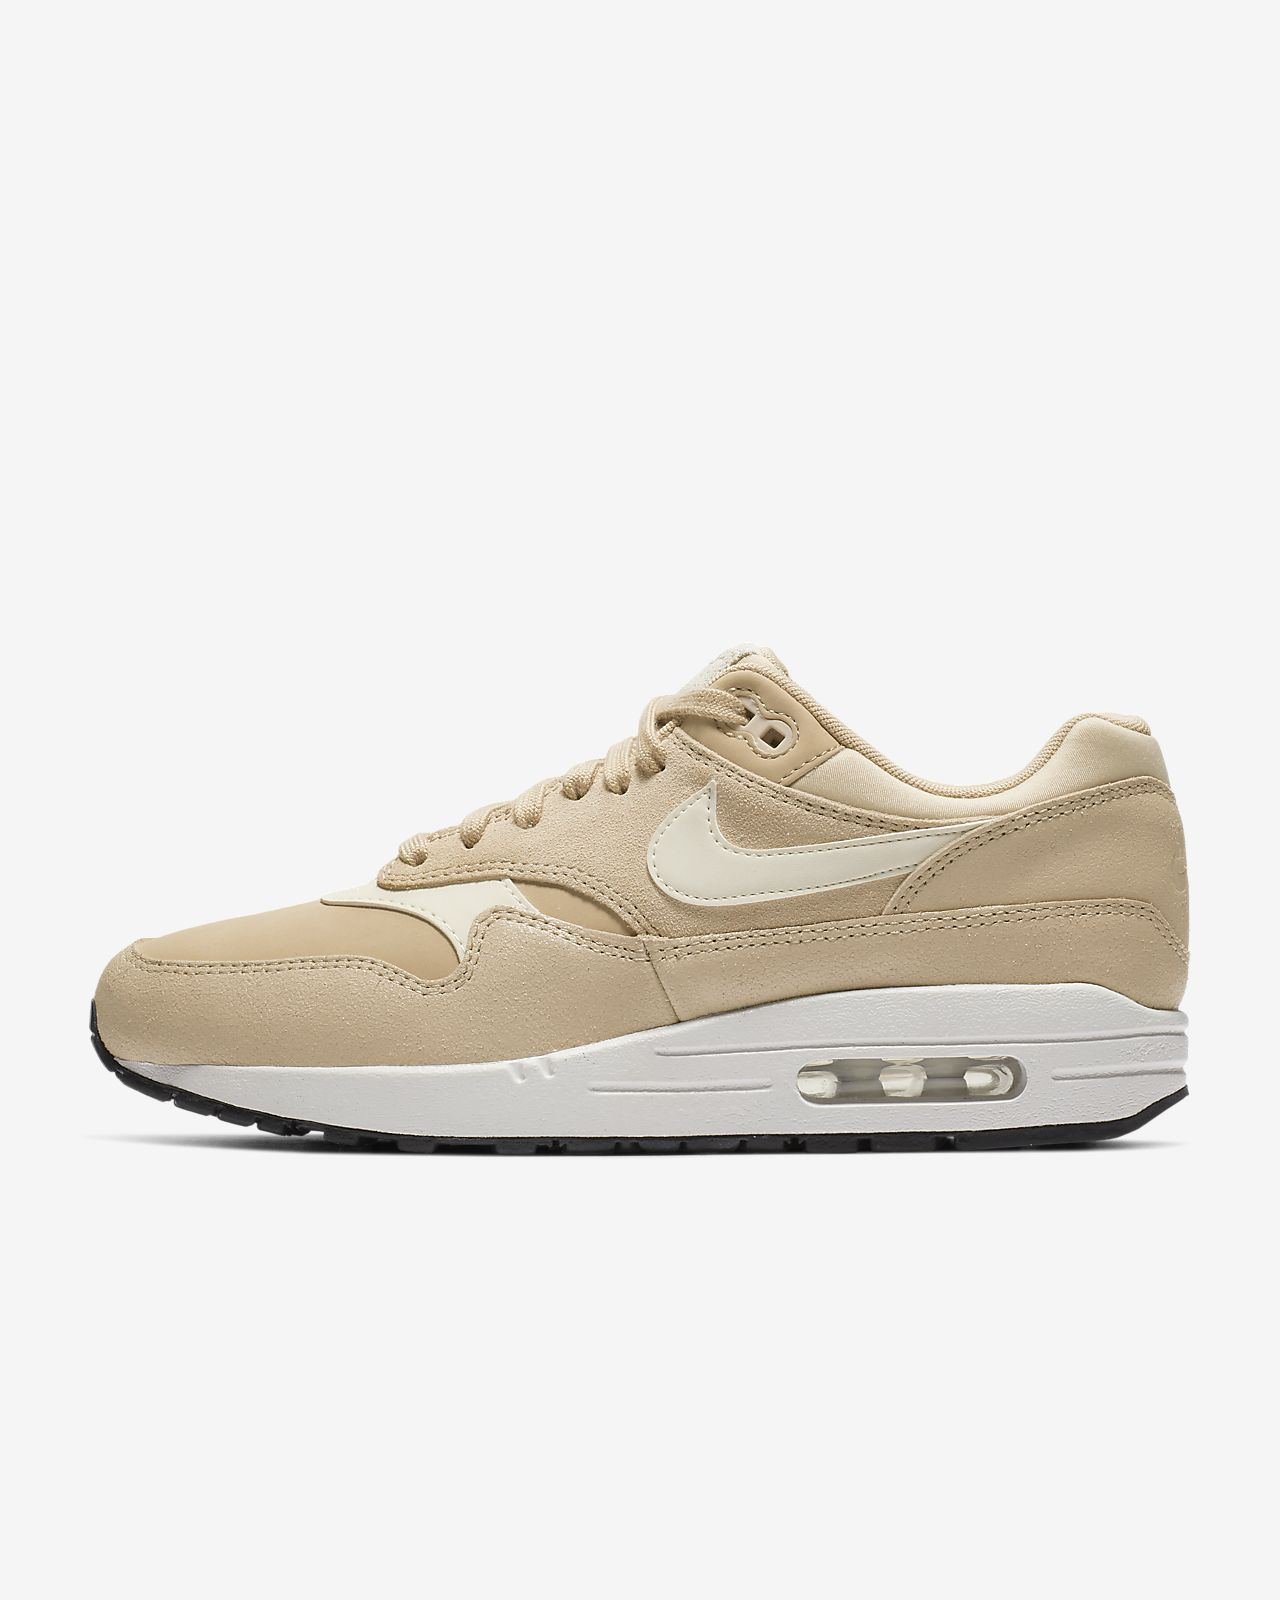 bab58c3b9 Nike Air Max 1 Premium Women s Shoe. Nike.com GB